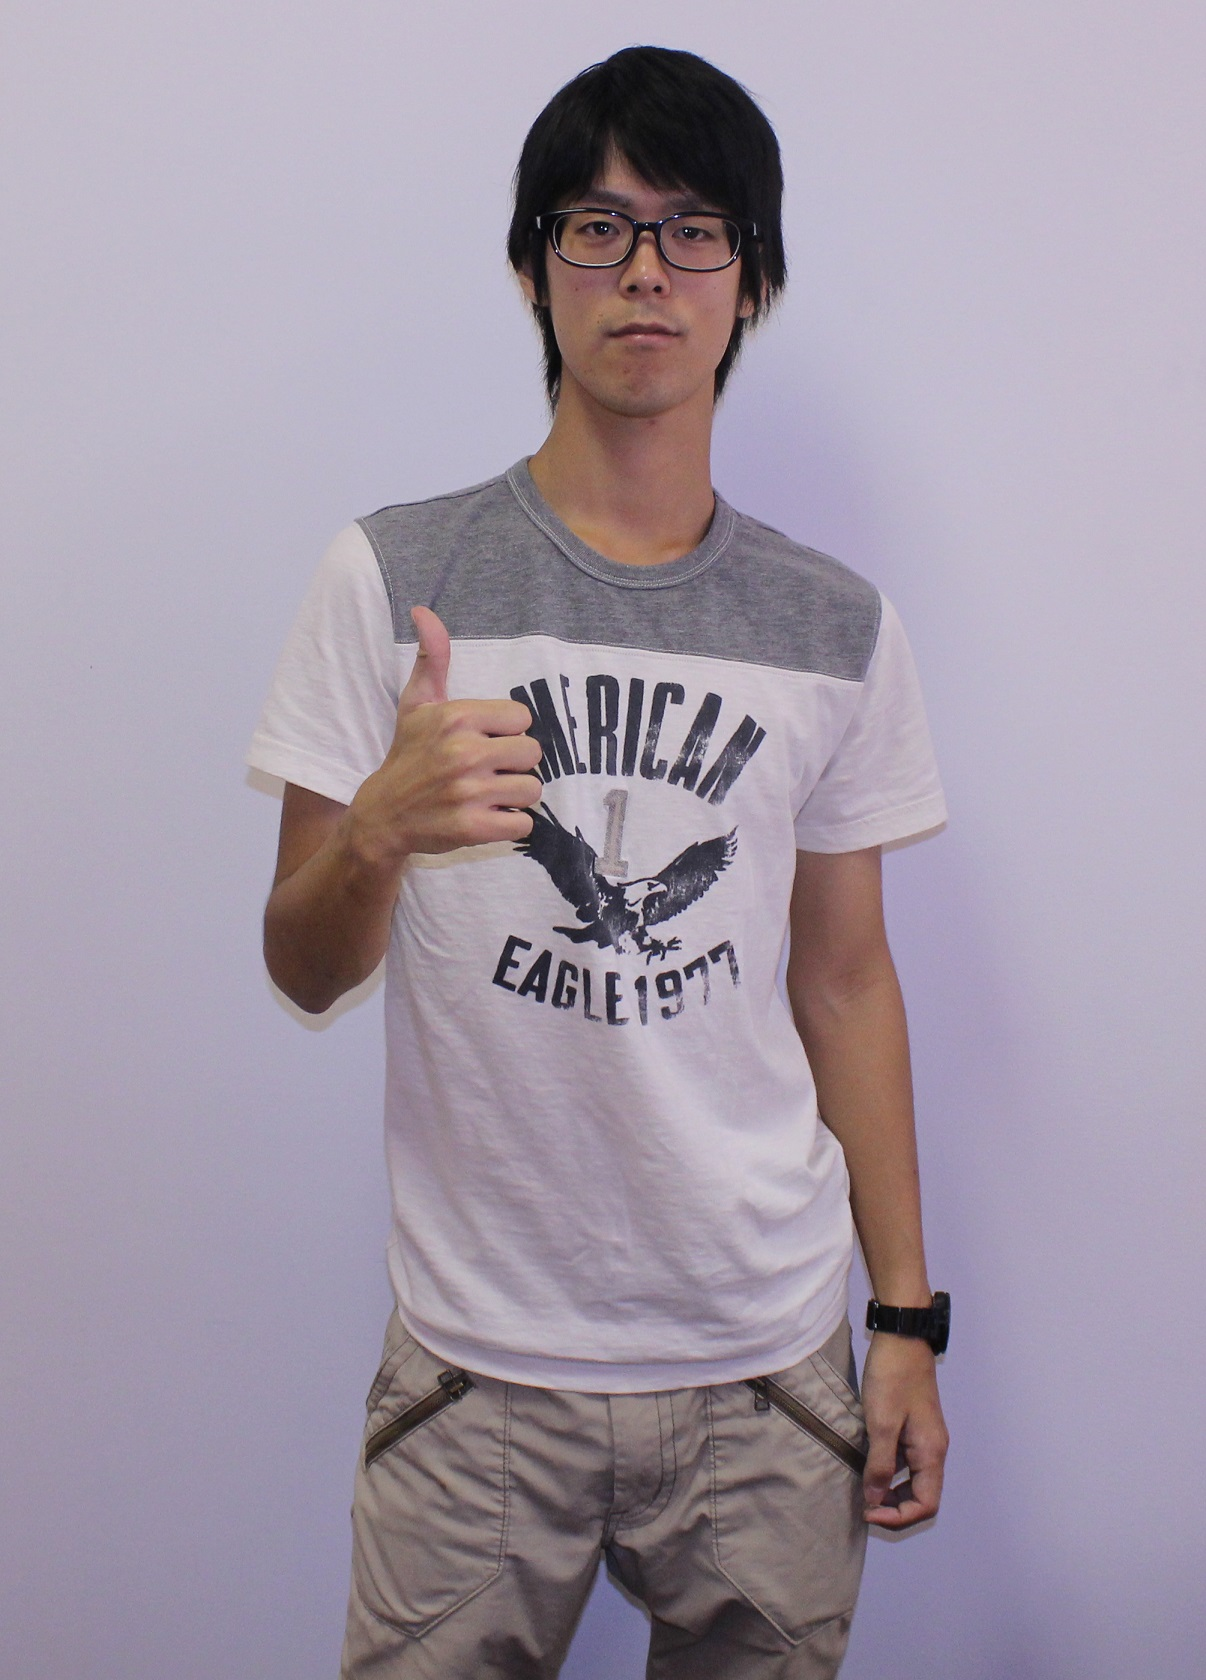 Makoto from Japan is studying English at EC Montreal